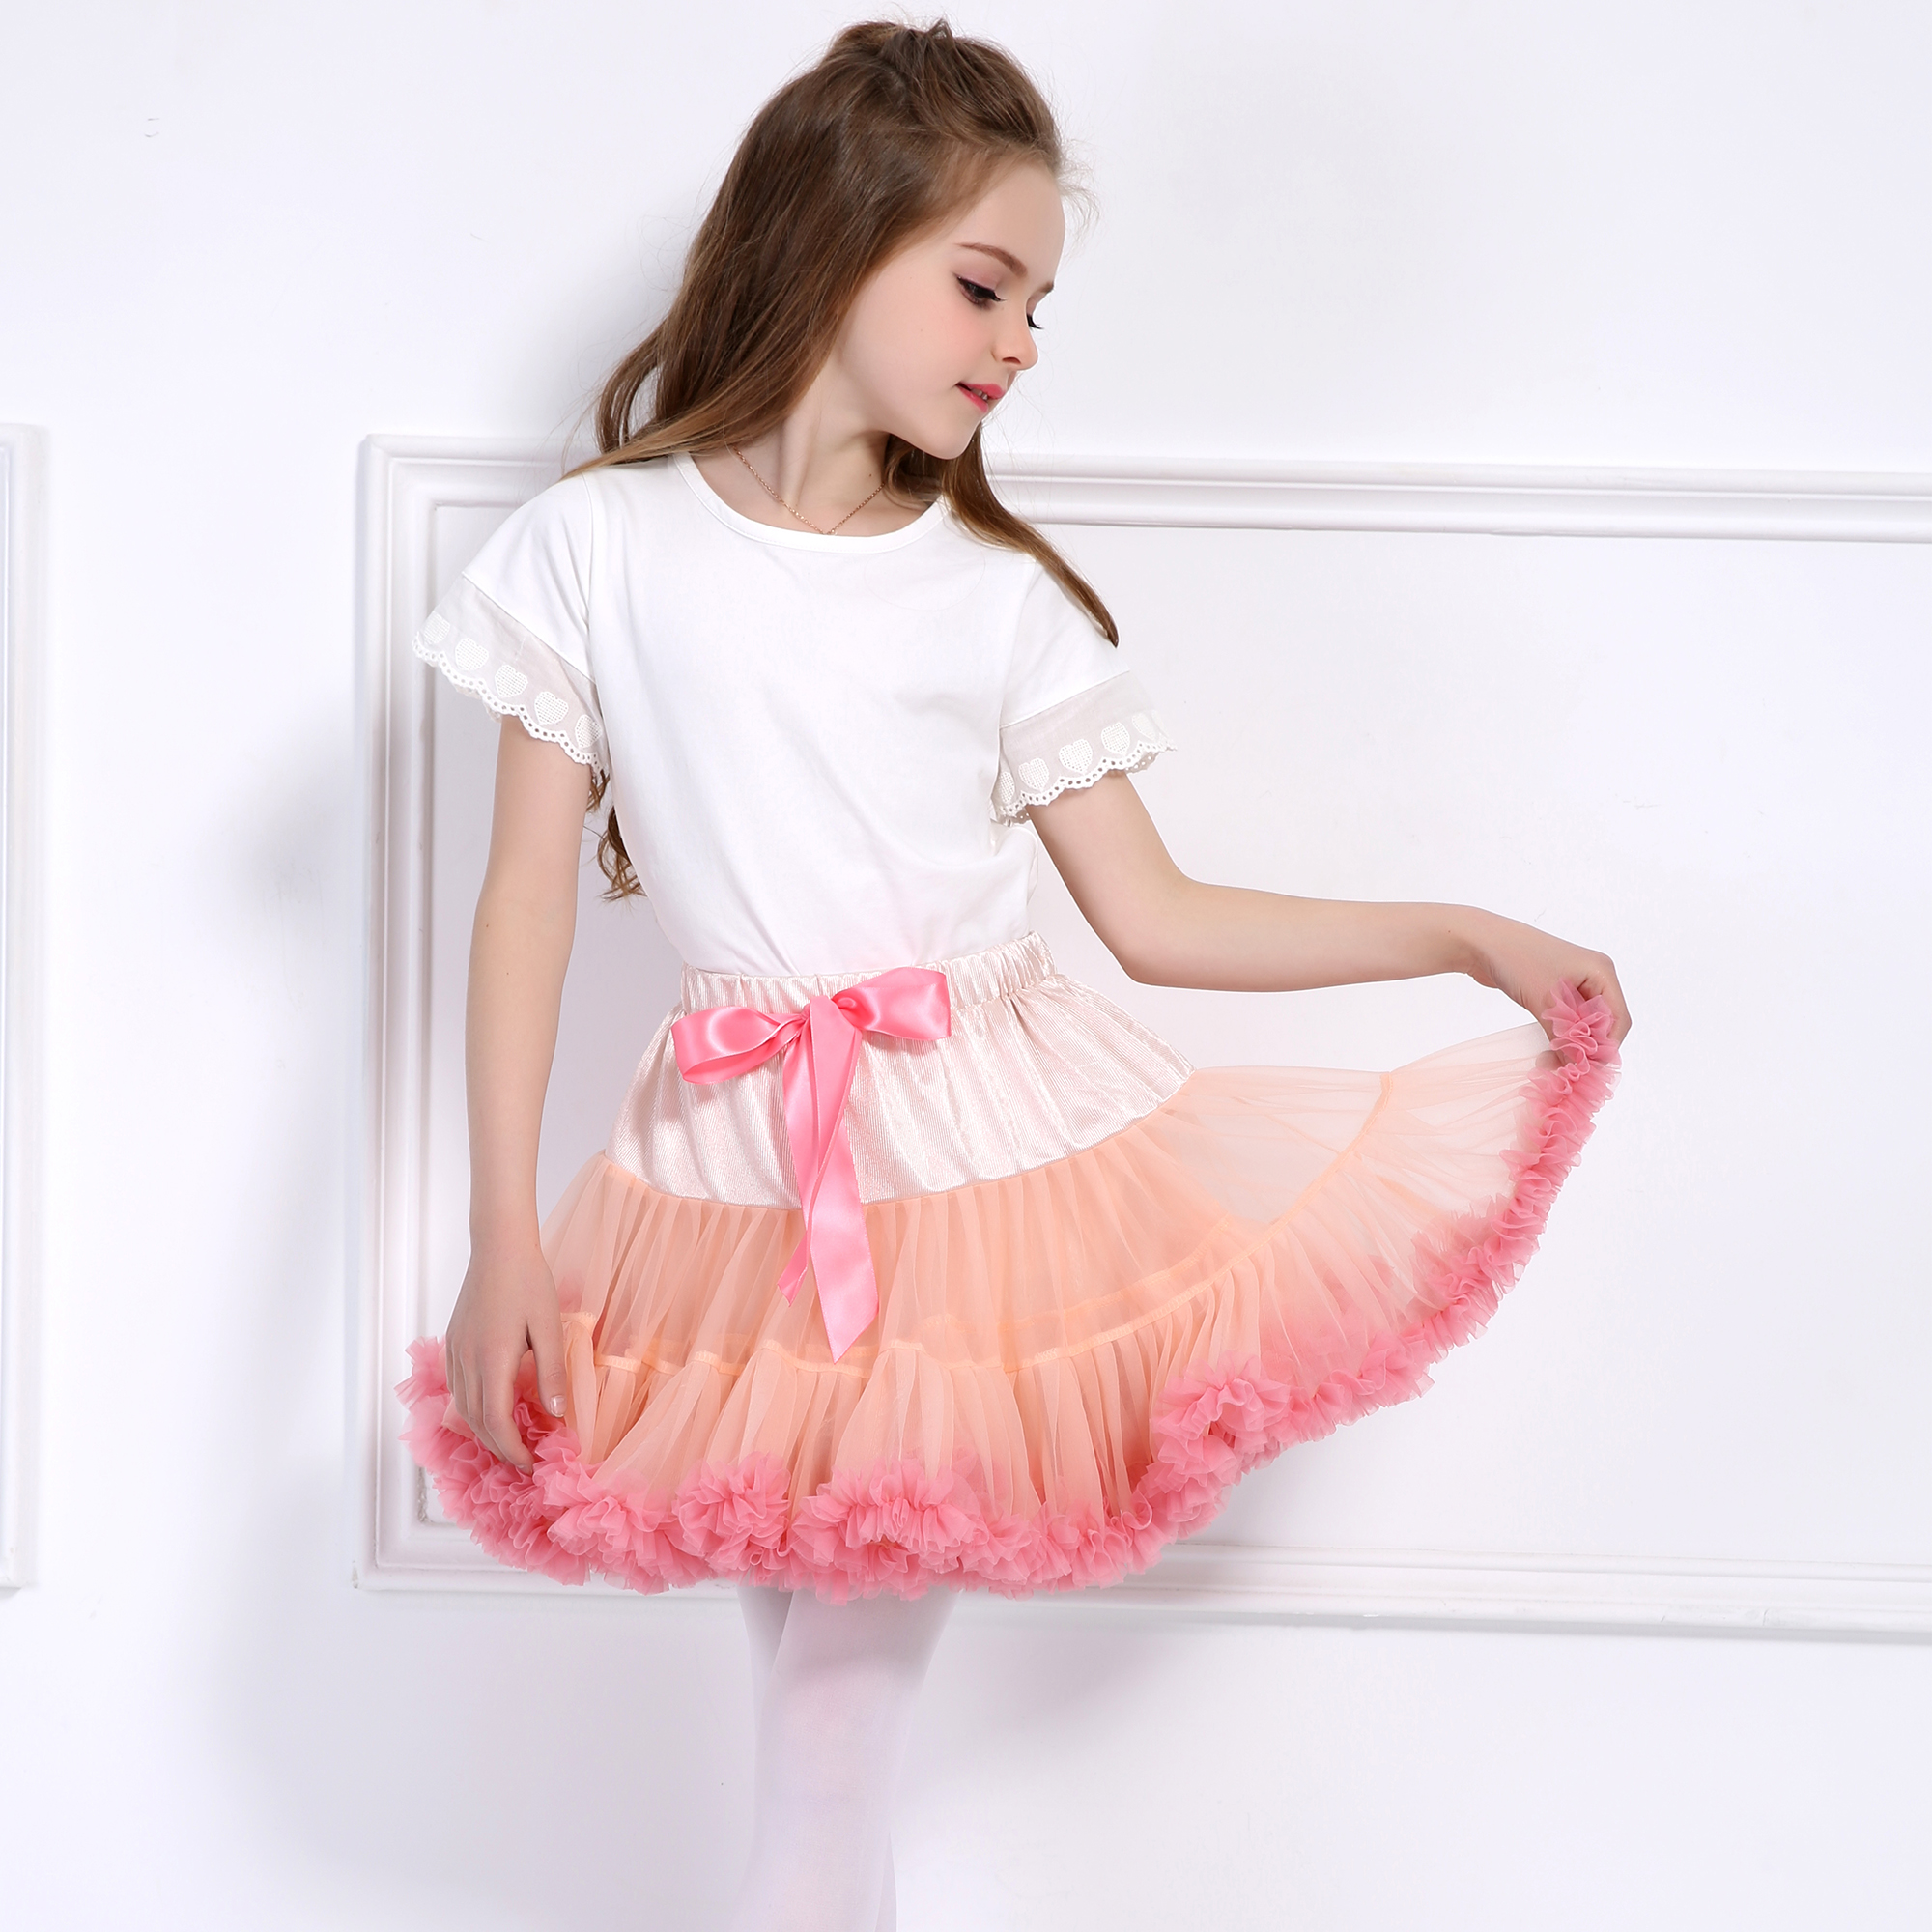 2pcs-Baby-Girls-Tutu-Skirts-Headband-Fluffy-Kids-Pettiskirts-Children-Clothes-Princess-Dance-Party-Tulle-Petticoat-Wholesale-4